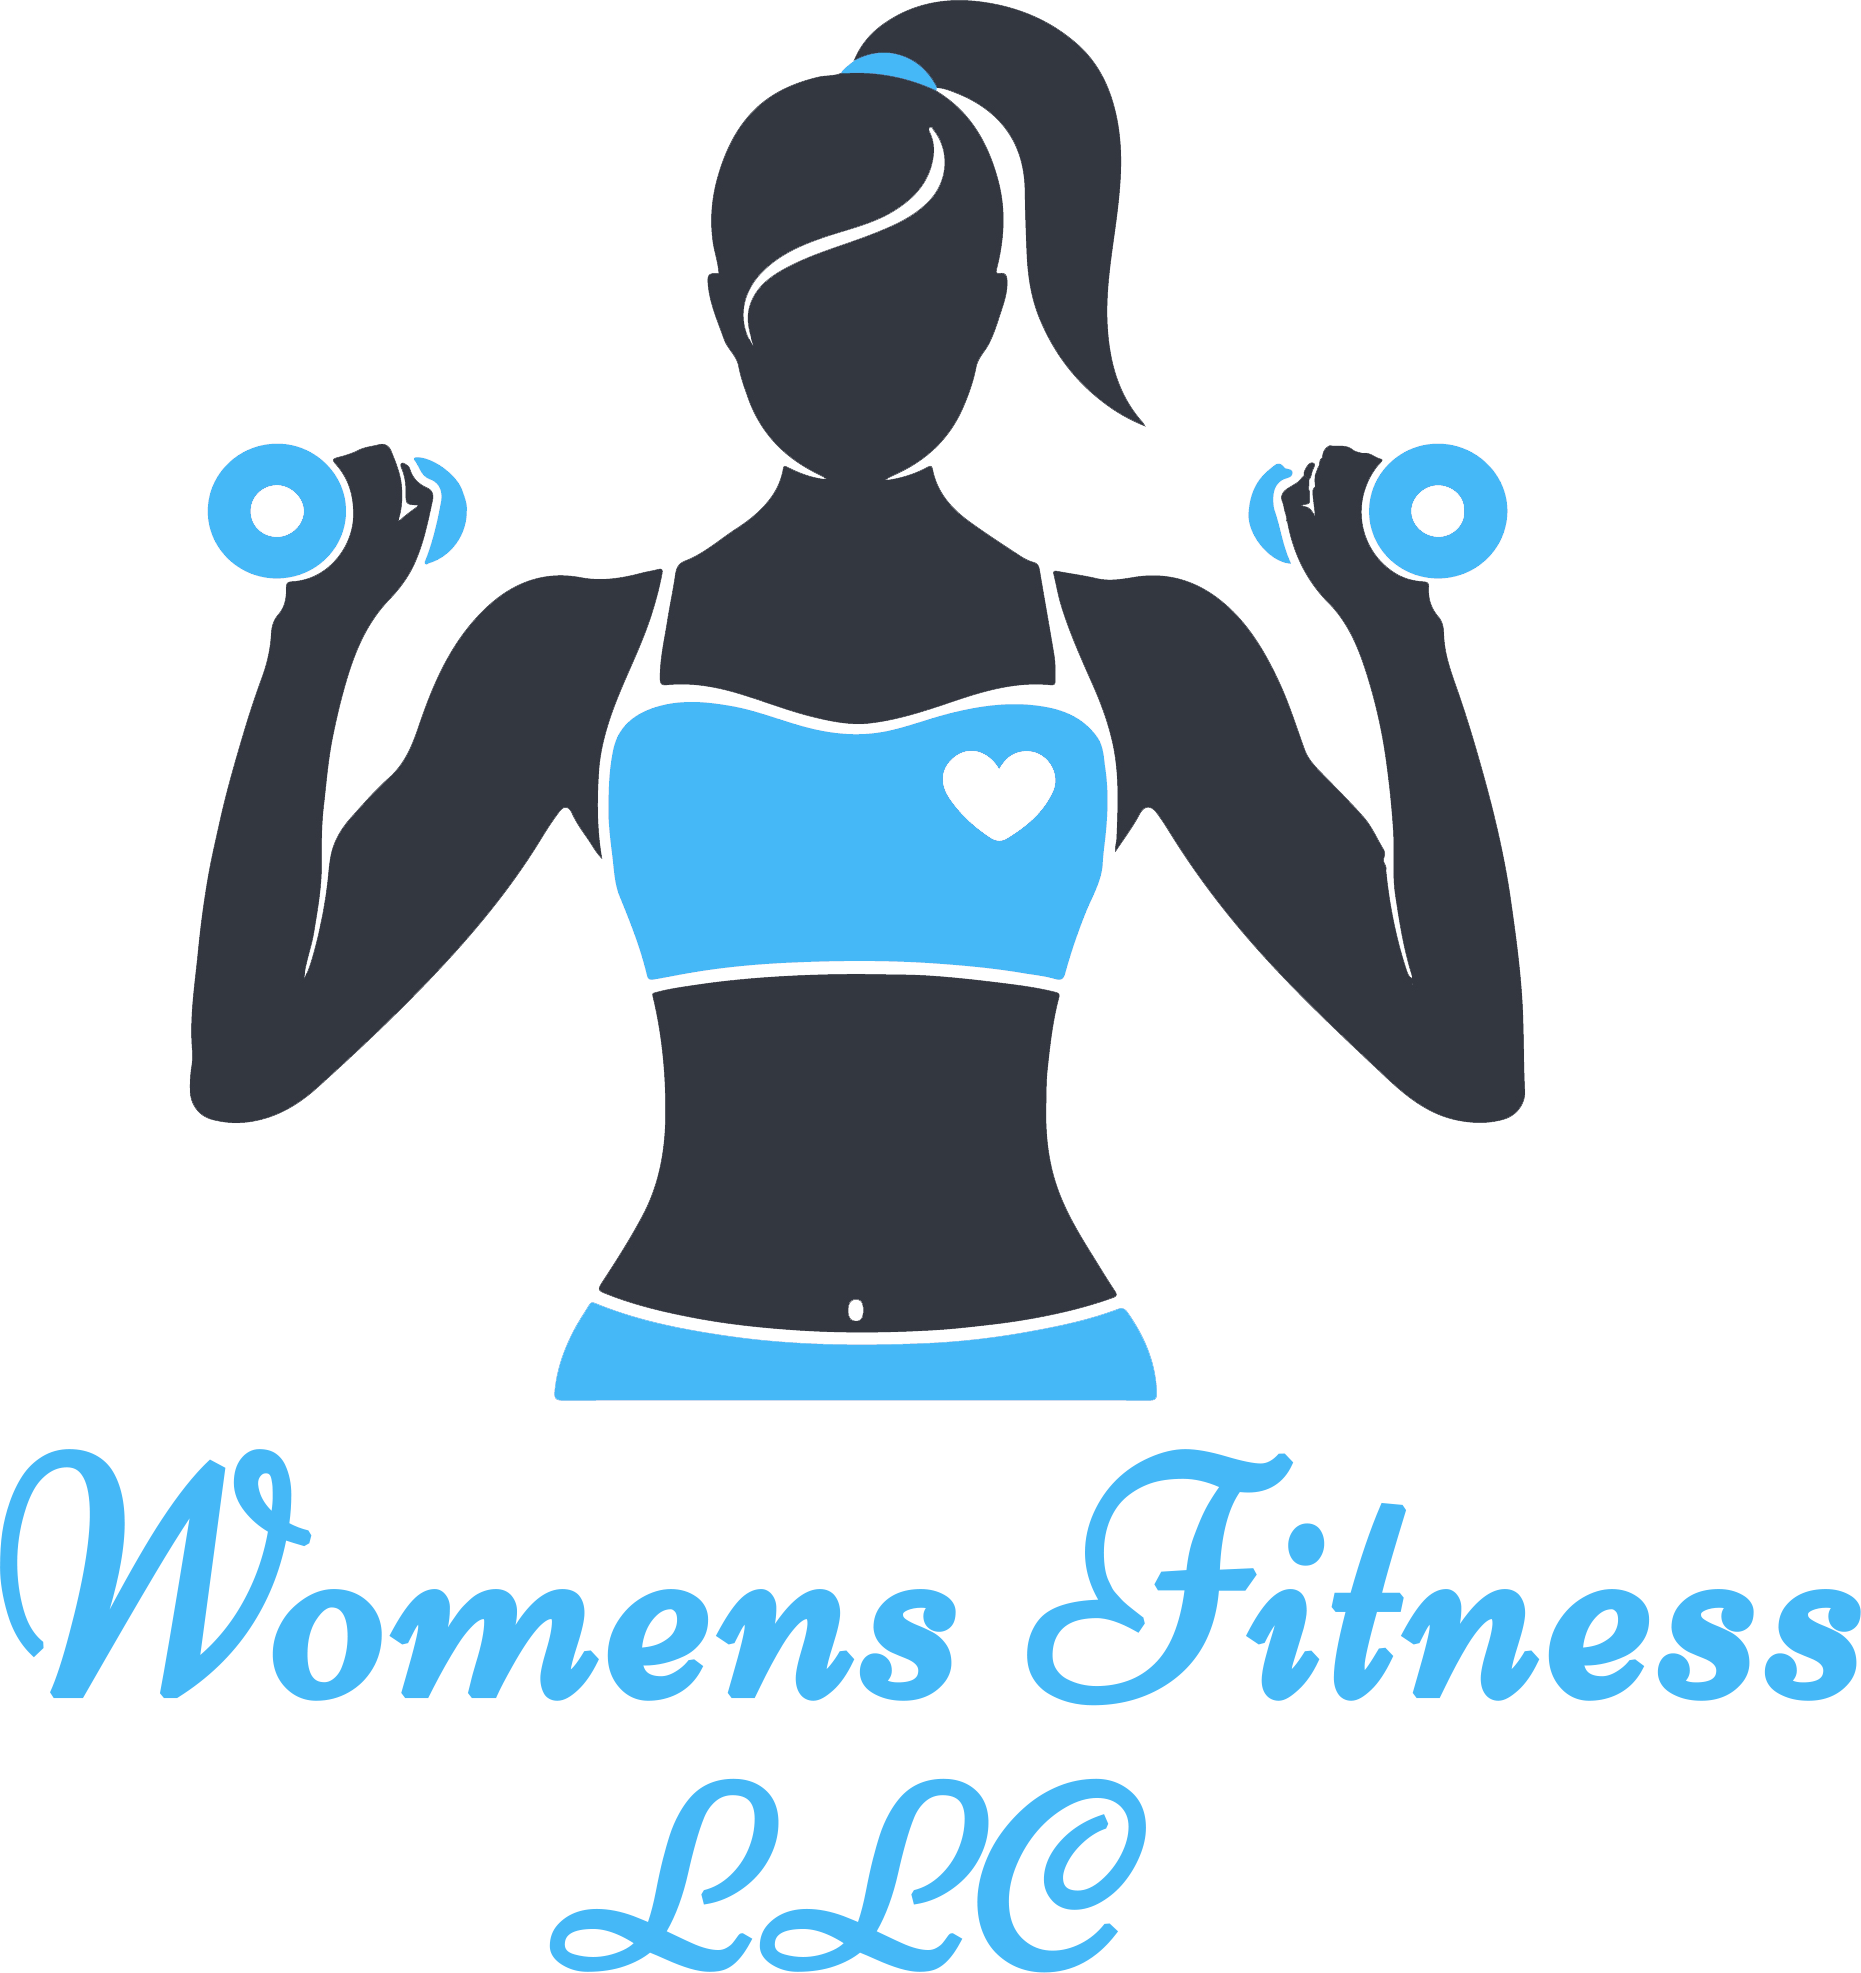 Dumbbells Clipart Women S Fitness Full Size Png Download Seekpng Large collections of hd transparent fitness woman png images for free download. dumbbells clipart women s fitness